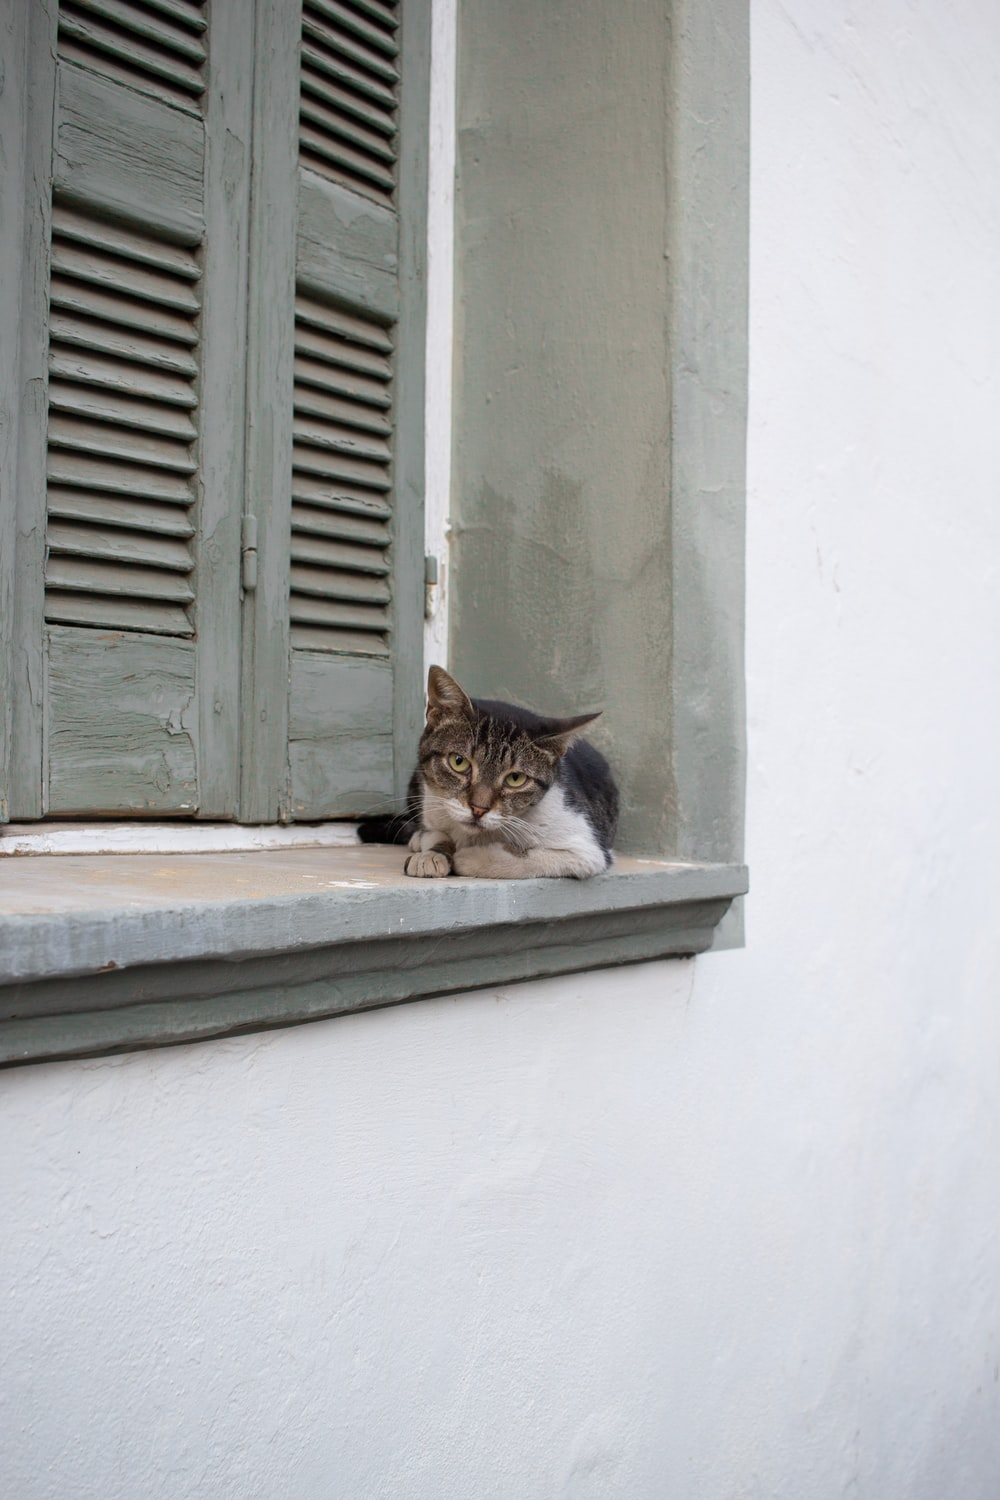 brown and white tabby cat besides gray window louver